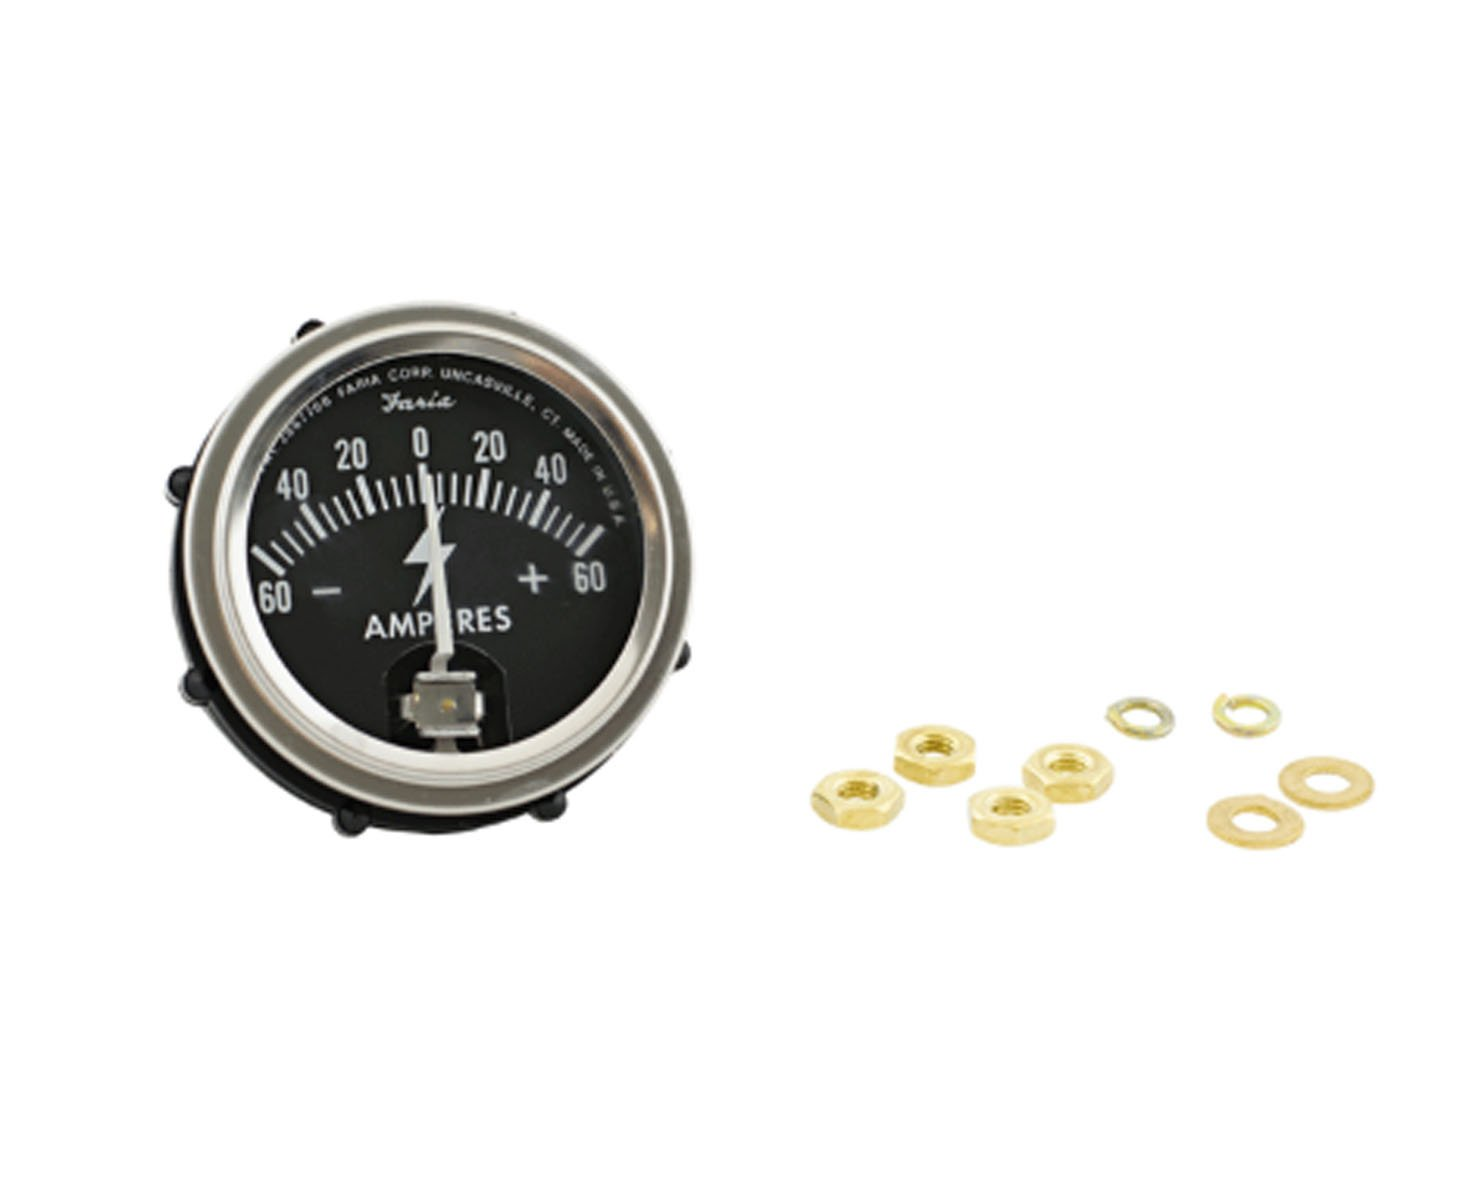 RTP Tractor Ammeter 60-60 Style with Chrome Ring